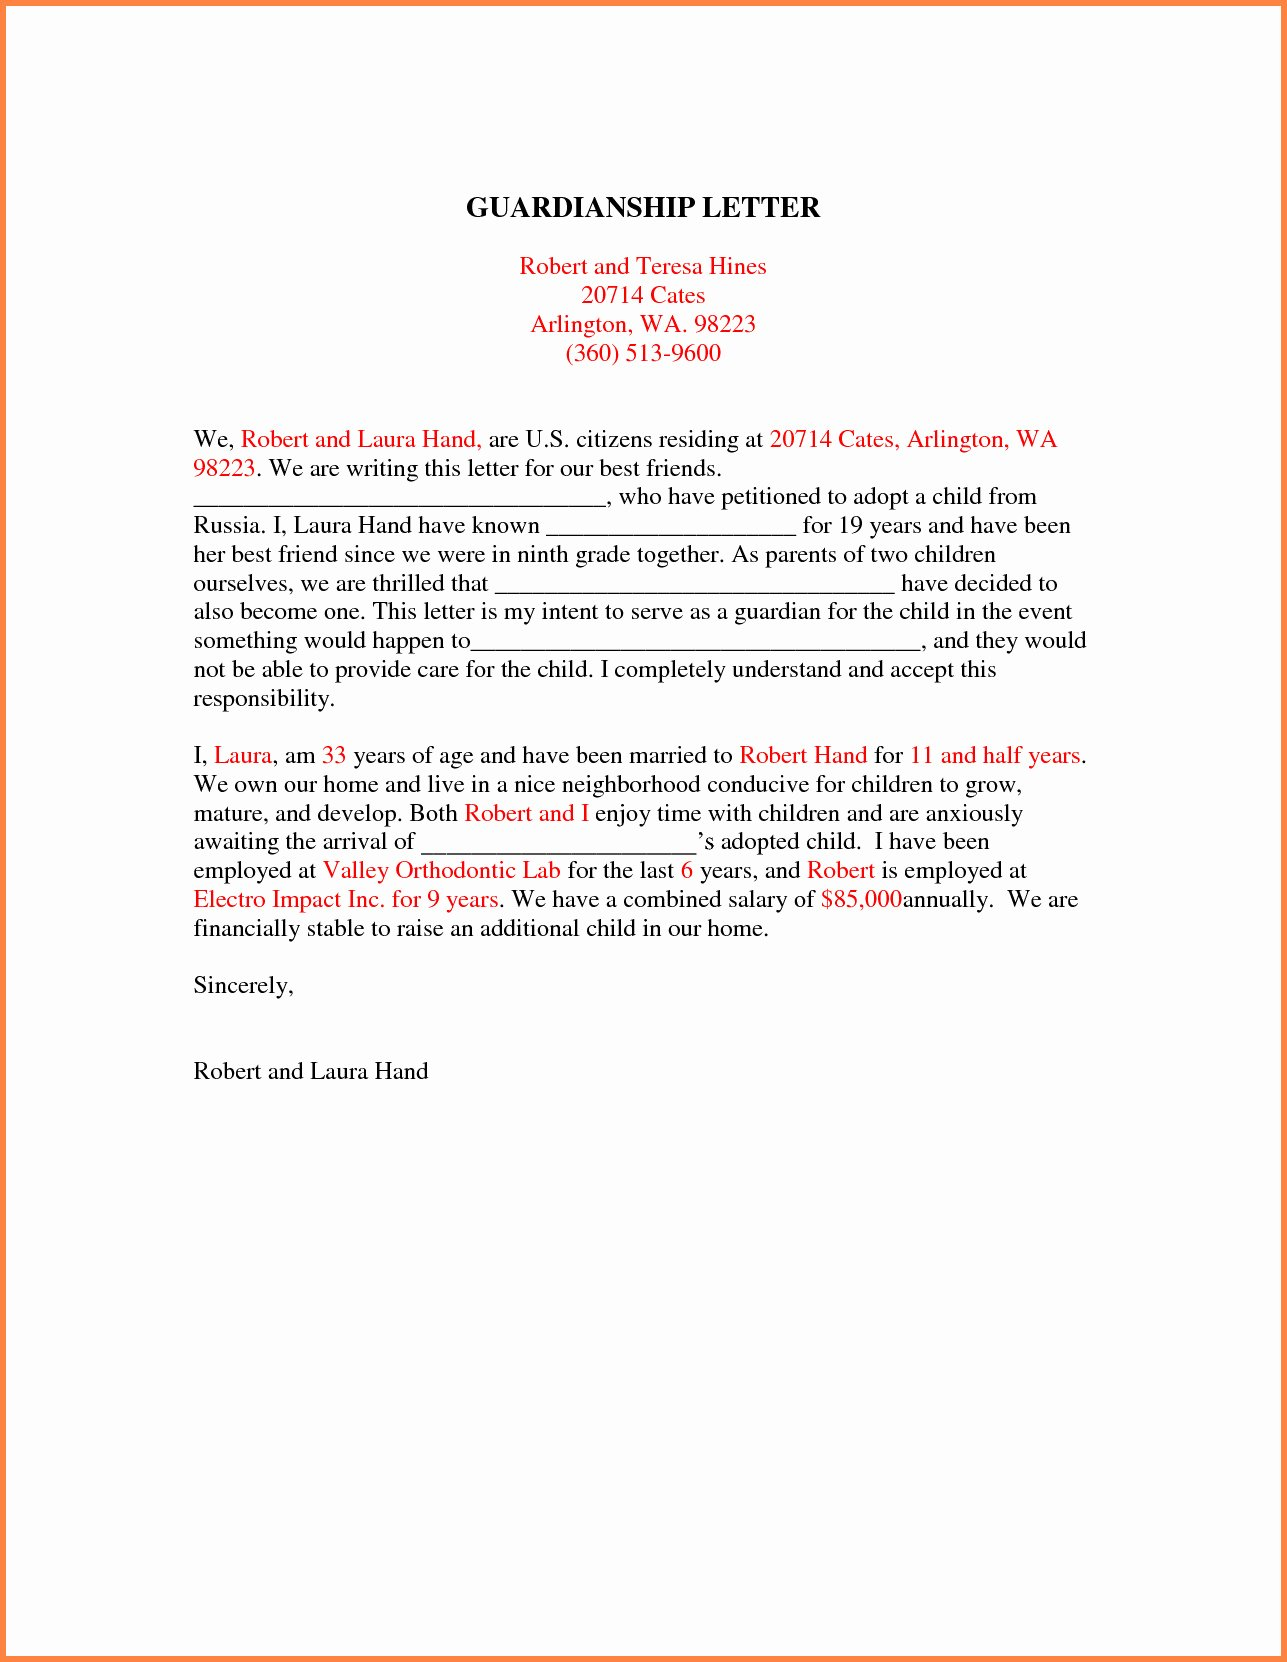 Free Temporary Guardianship form Template Lovely Temporary Guardianship Letter Template Samples